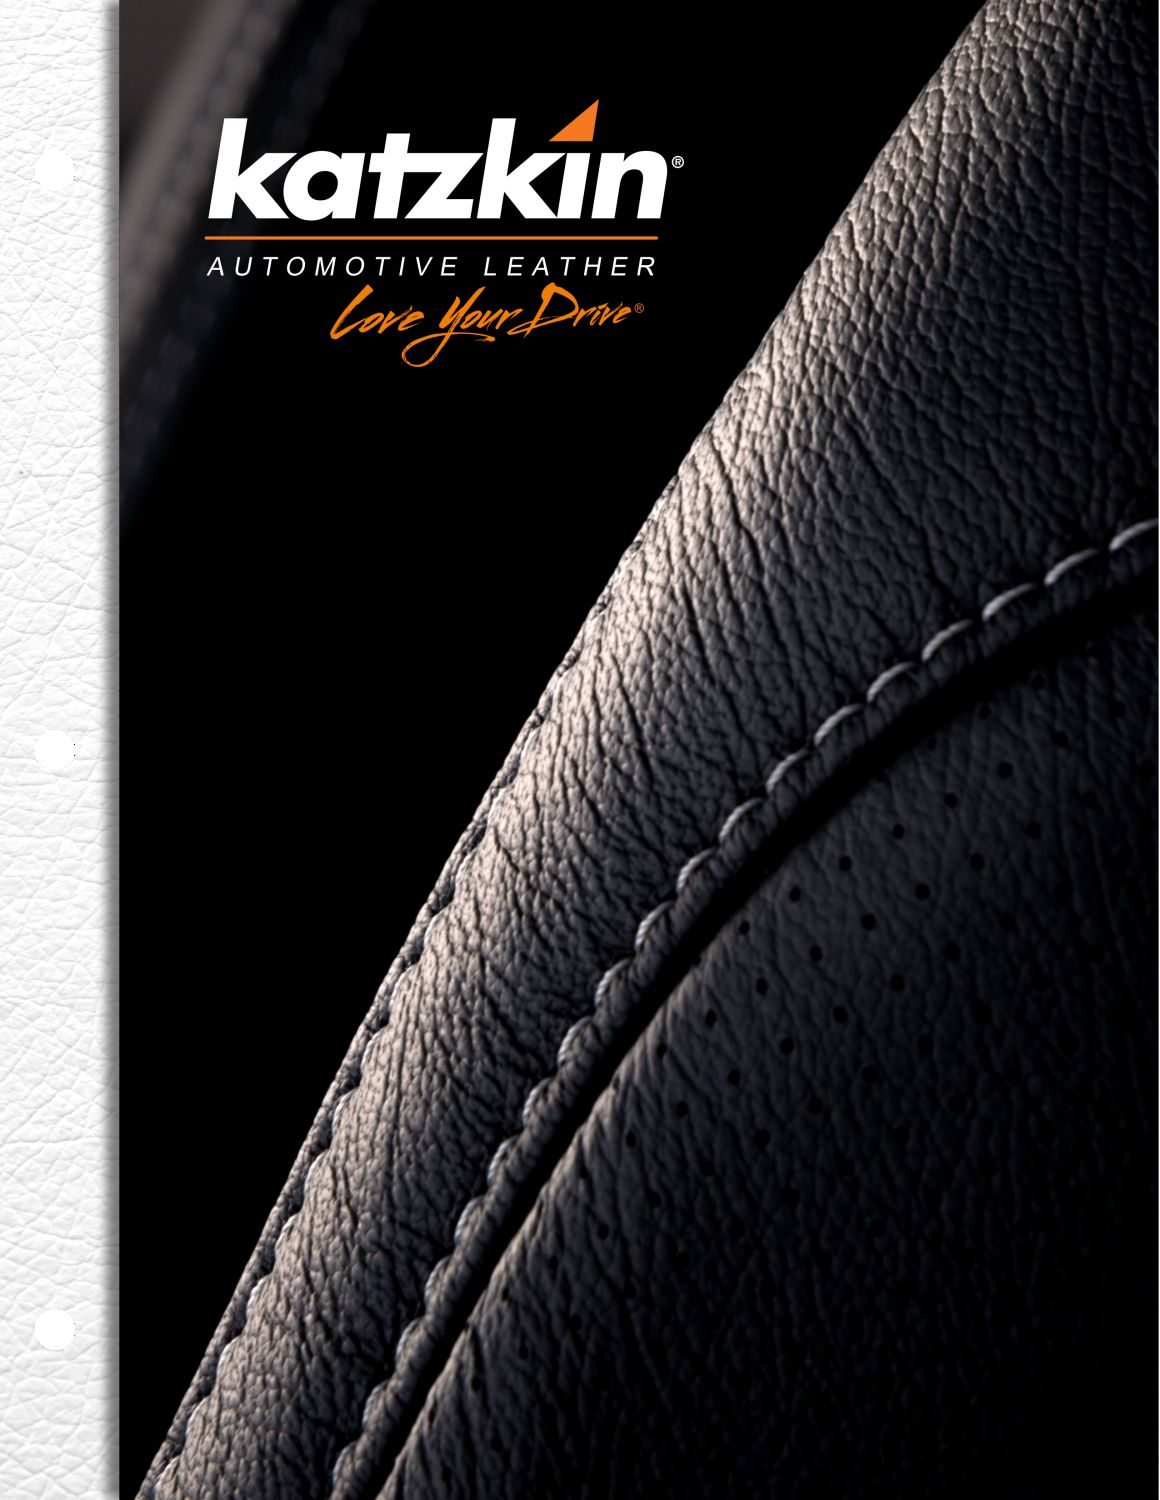 2020 Katzkin Swatch Card